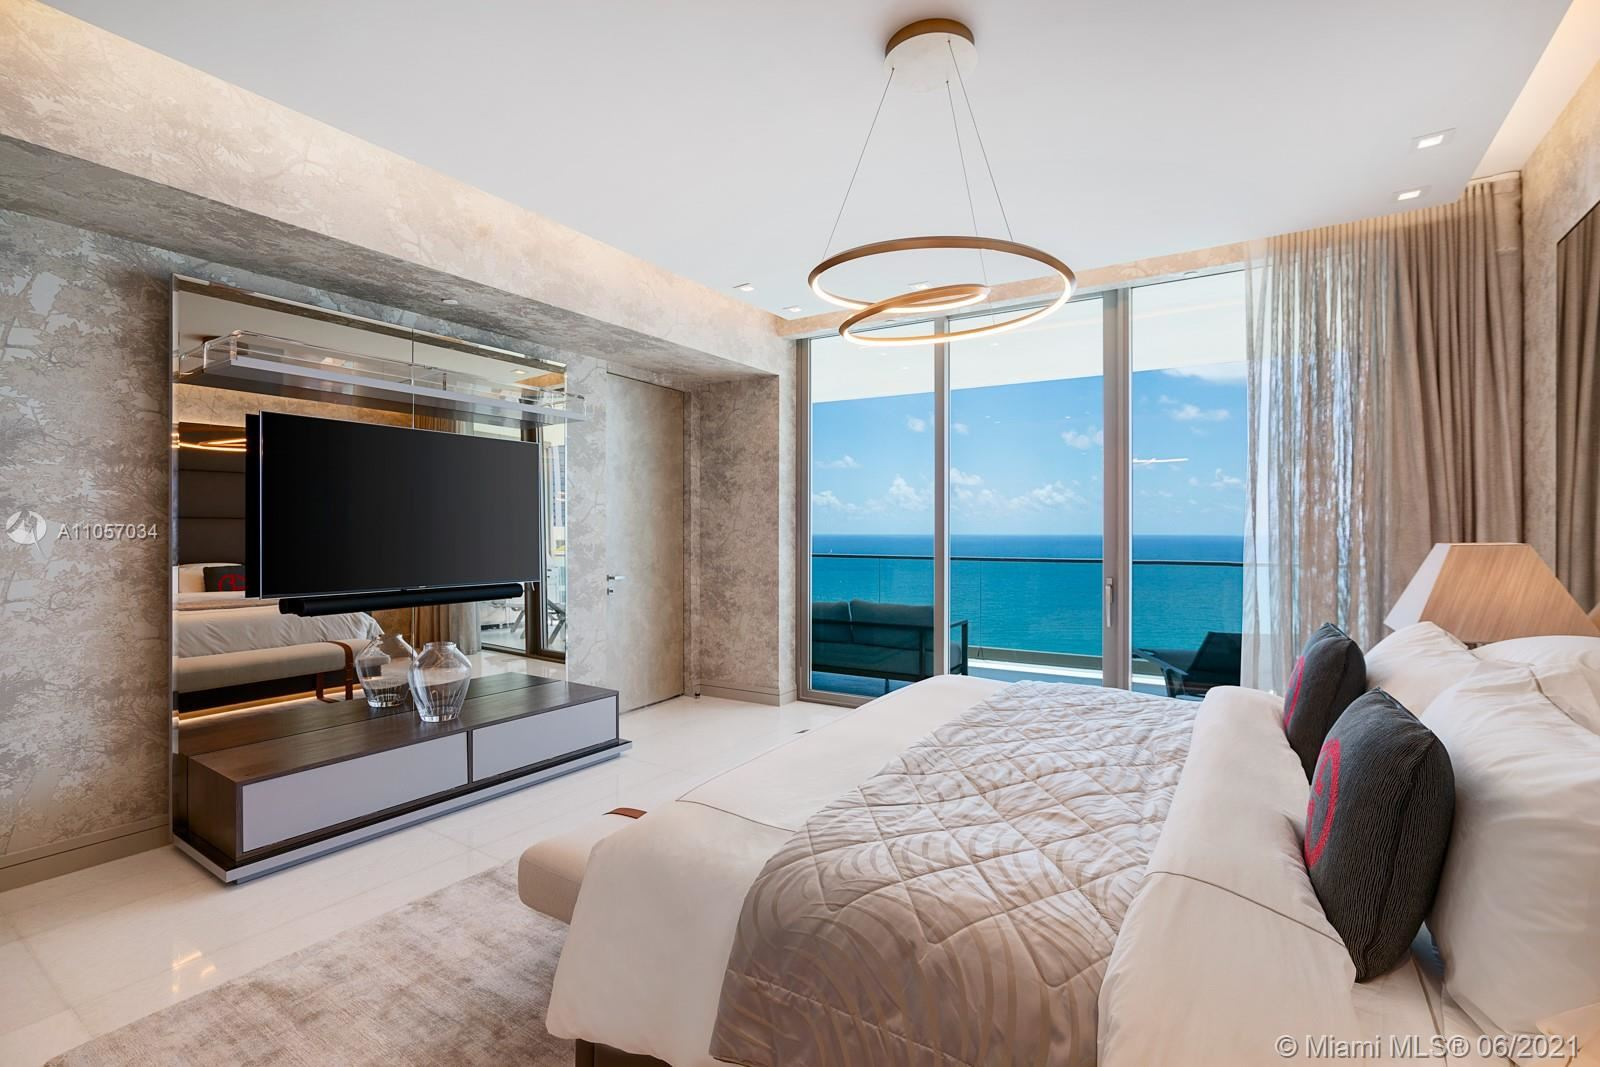 18975 Collins Ave #3101, Sunny Isles, FL 33160 - #: A11057034